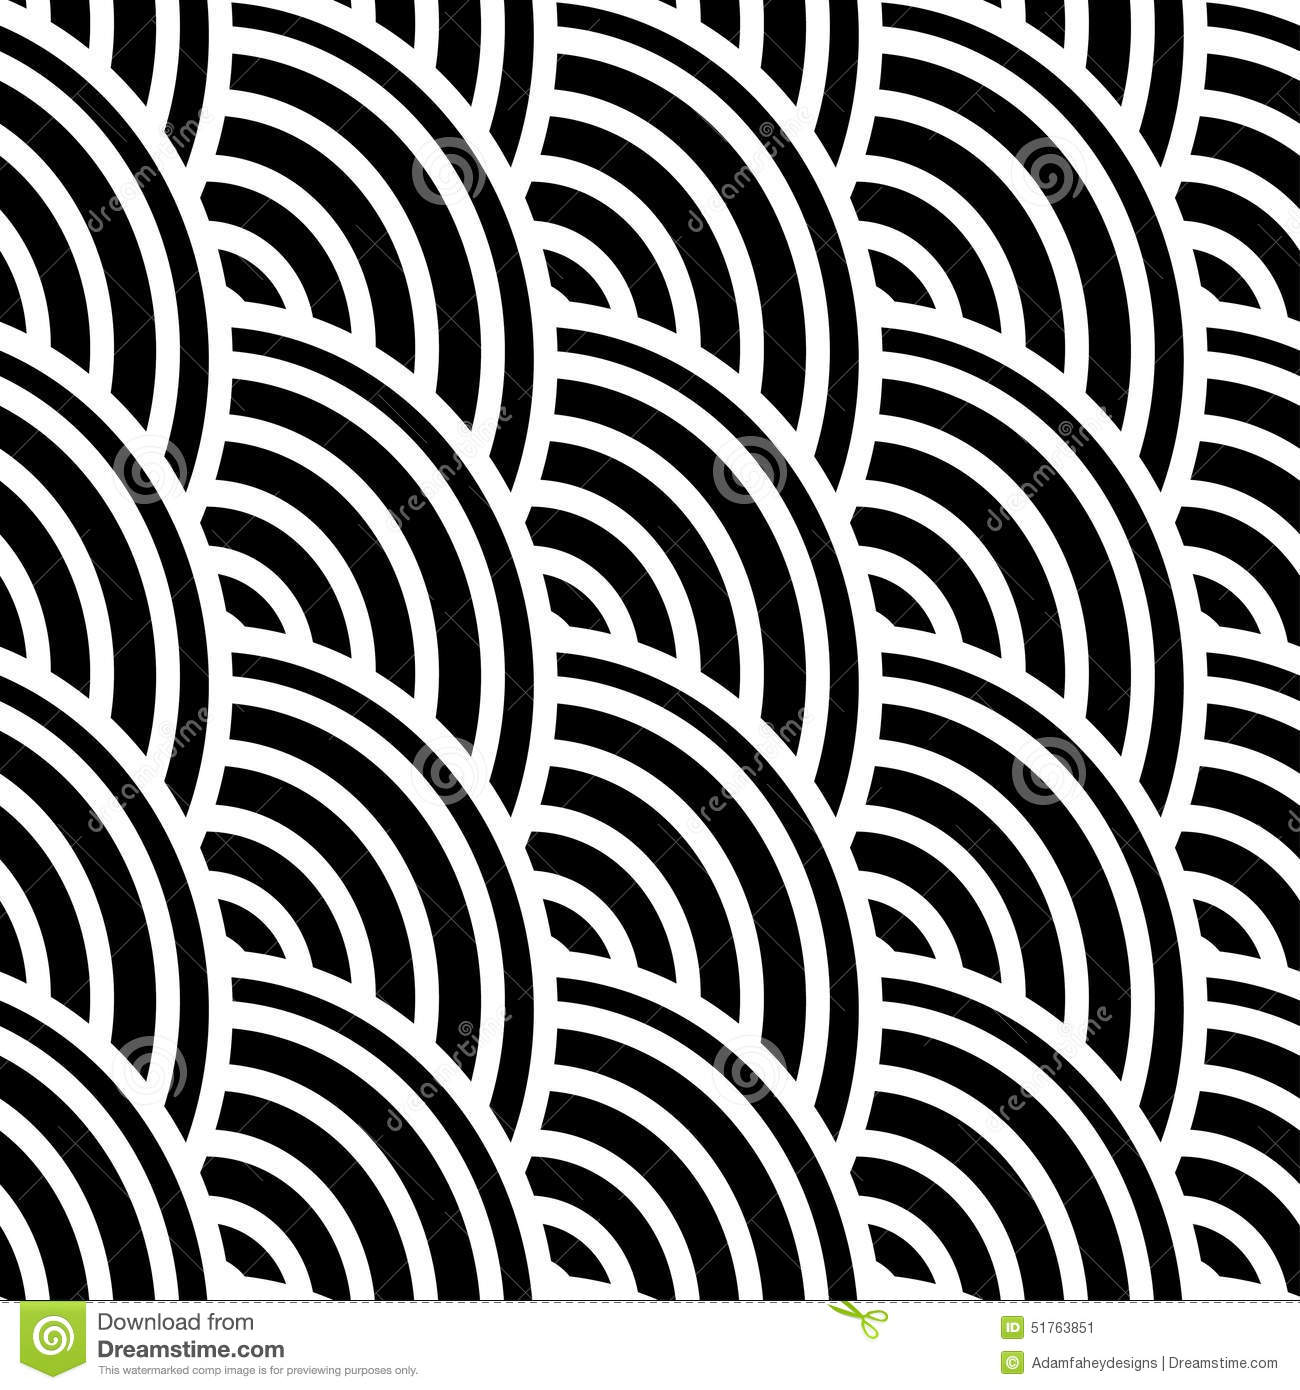 Curved pattern - photo#5